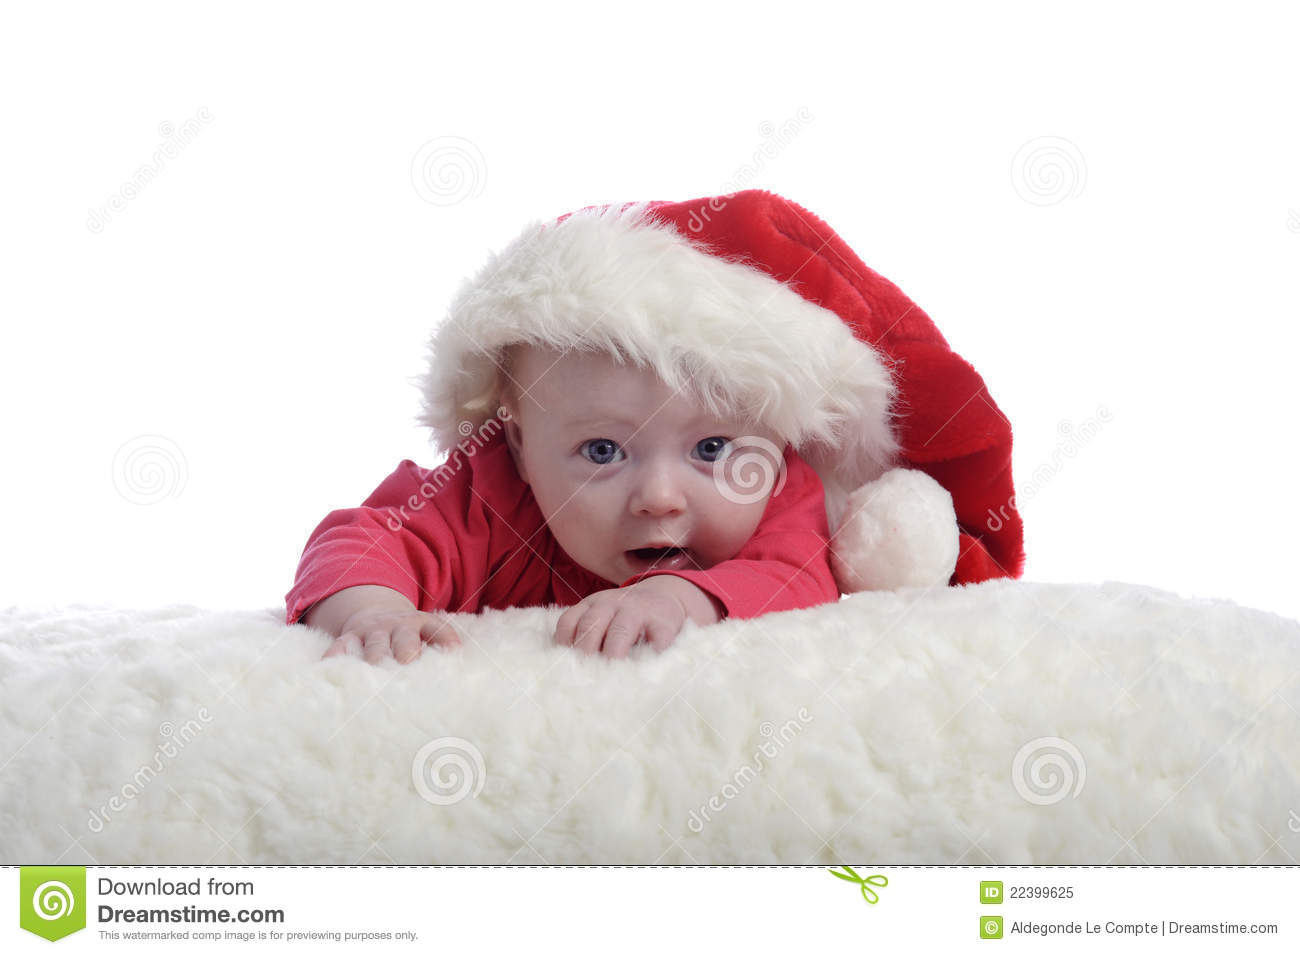 4fc179c6d345 4 Months Old Baby With Christmas Hat Stock Image - Image of person ...